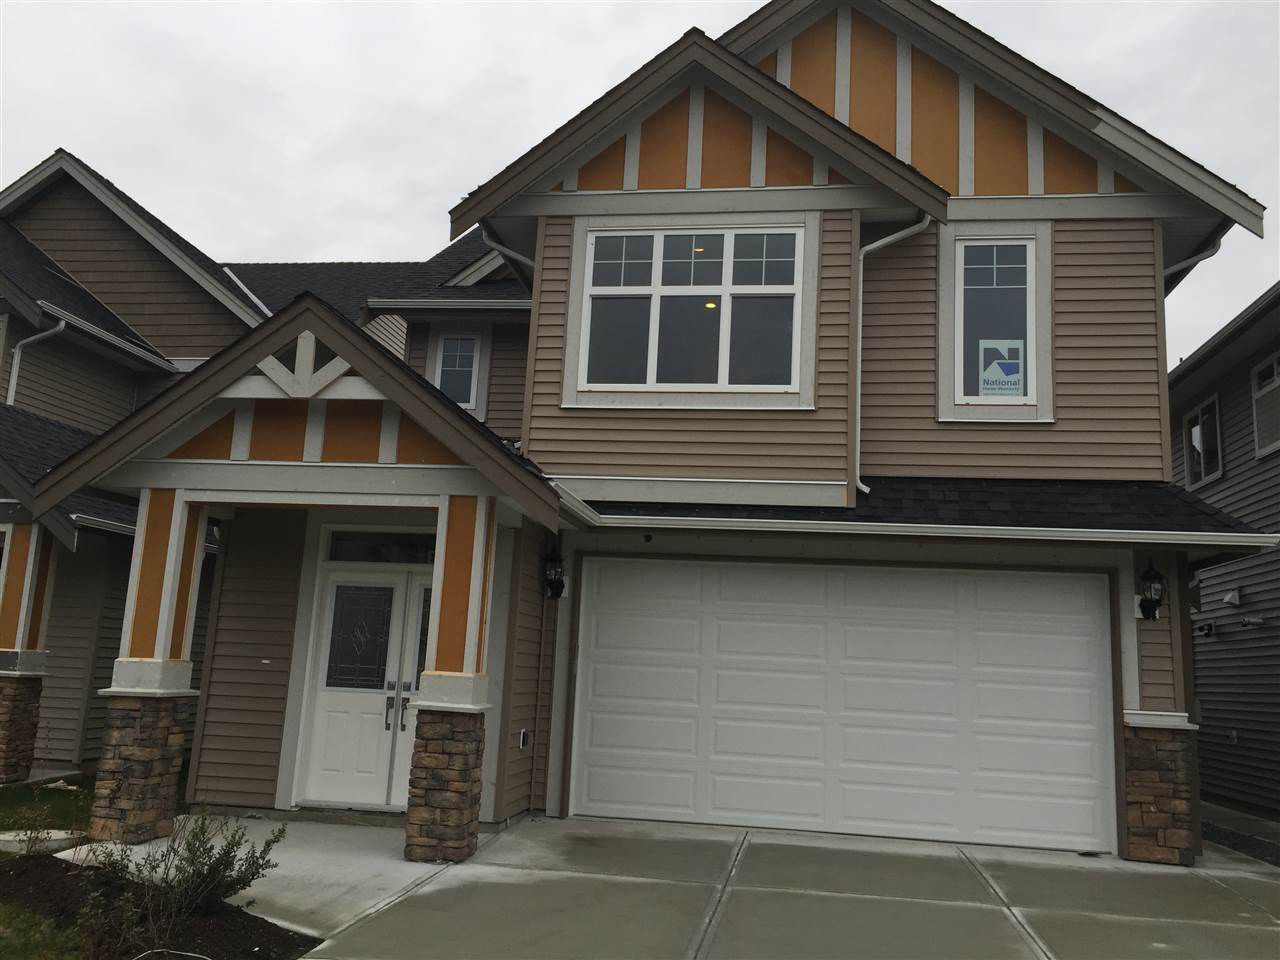 Main Photo: 34846 MCMILLAN Place in Abbotsford: Abbotsford East House for sale : MLS®# R2147595